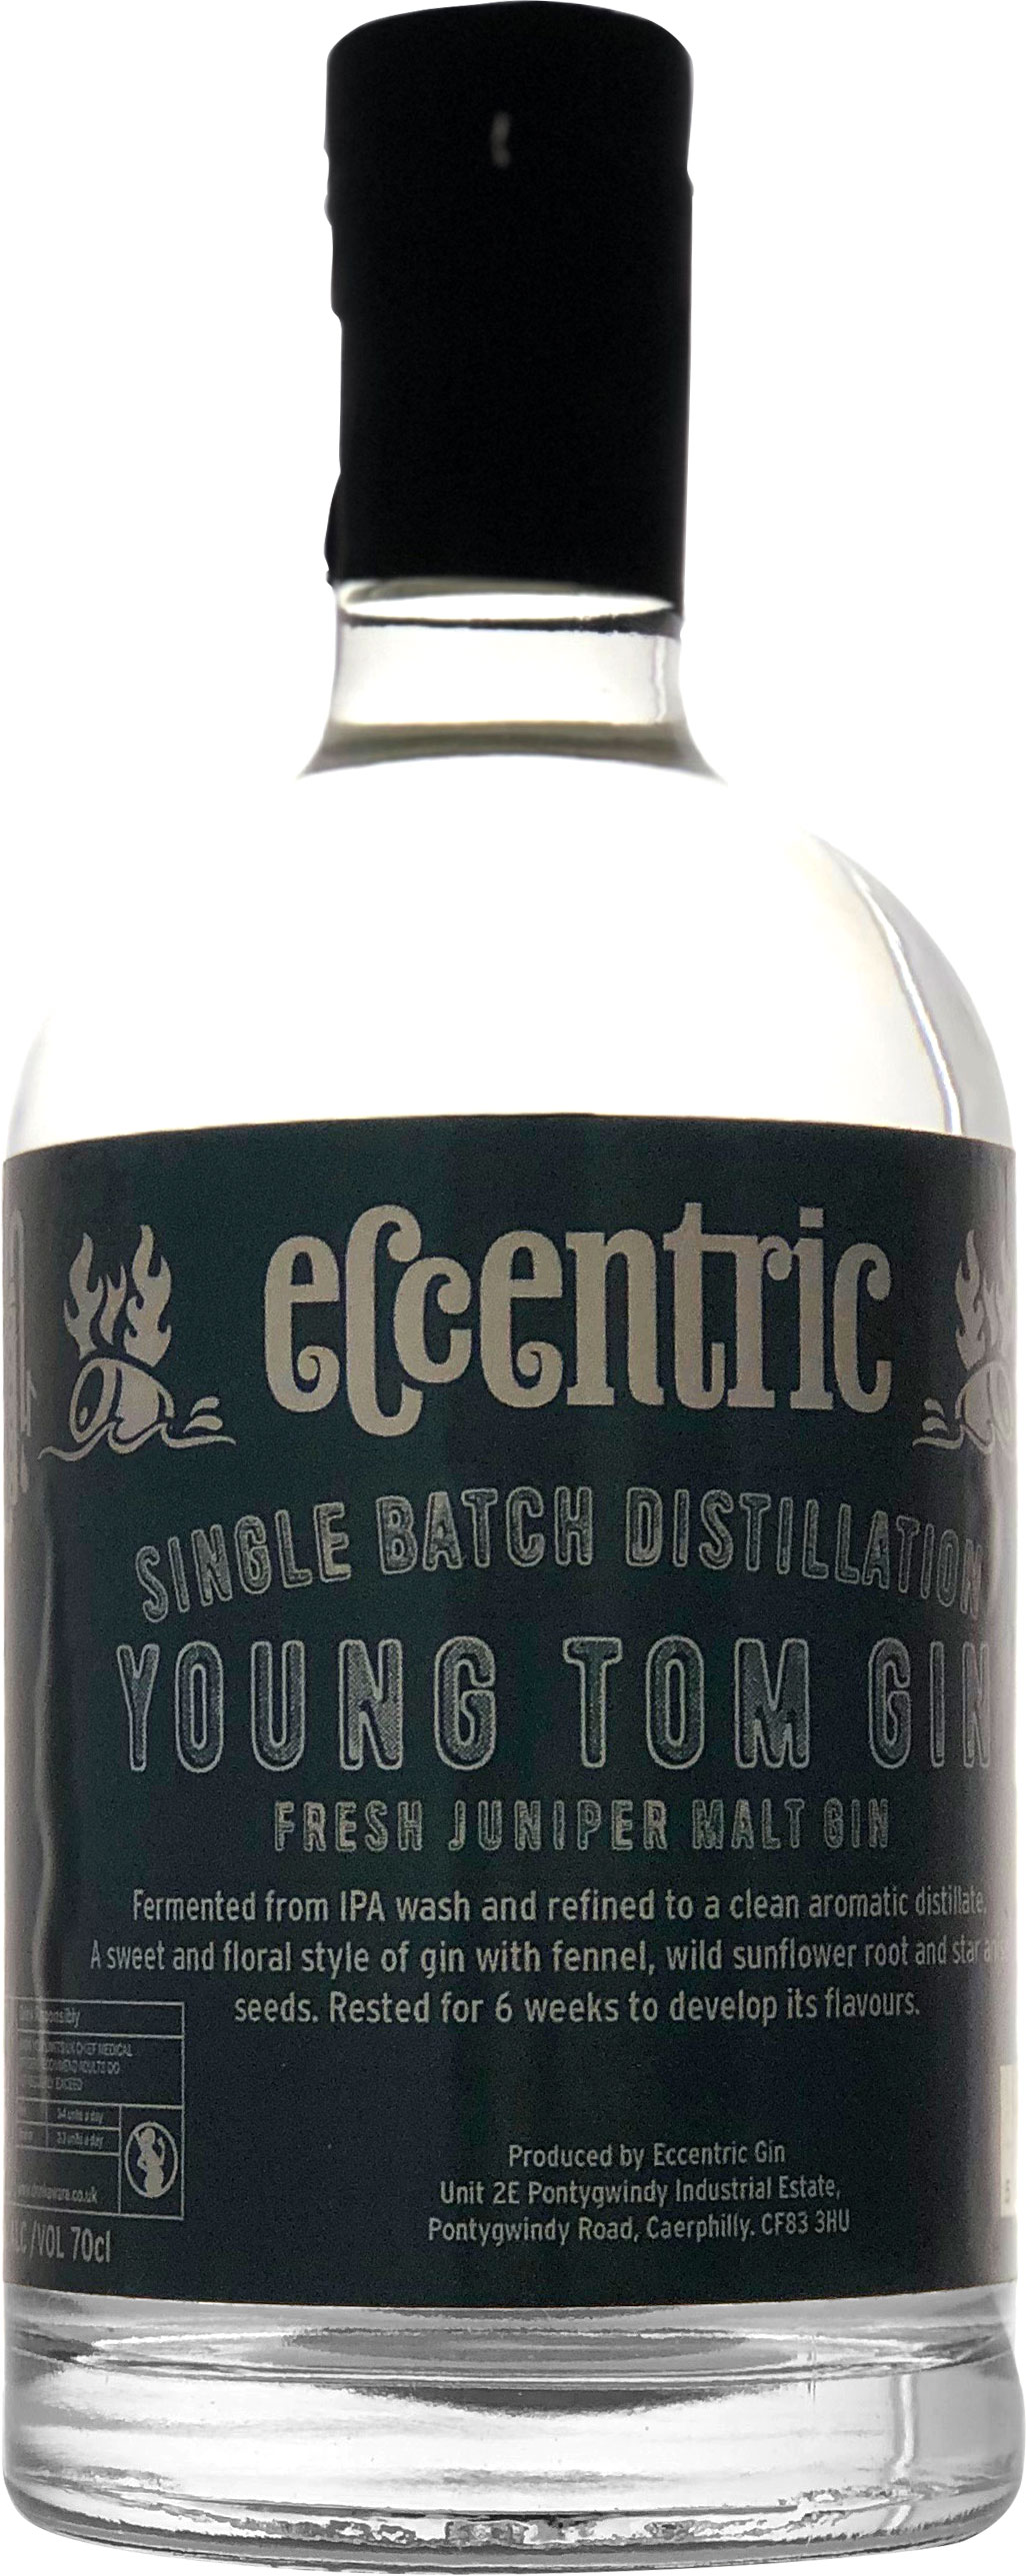 Eccentric - Young Tom Gin 70cl Bottle